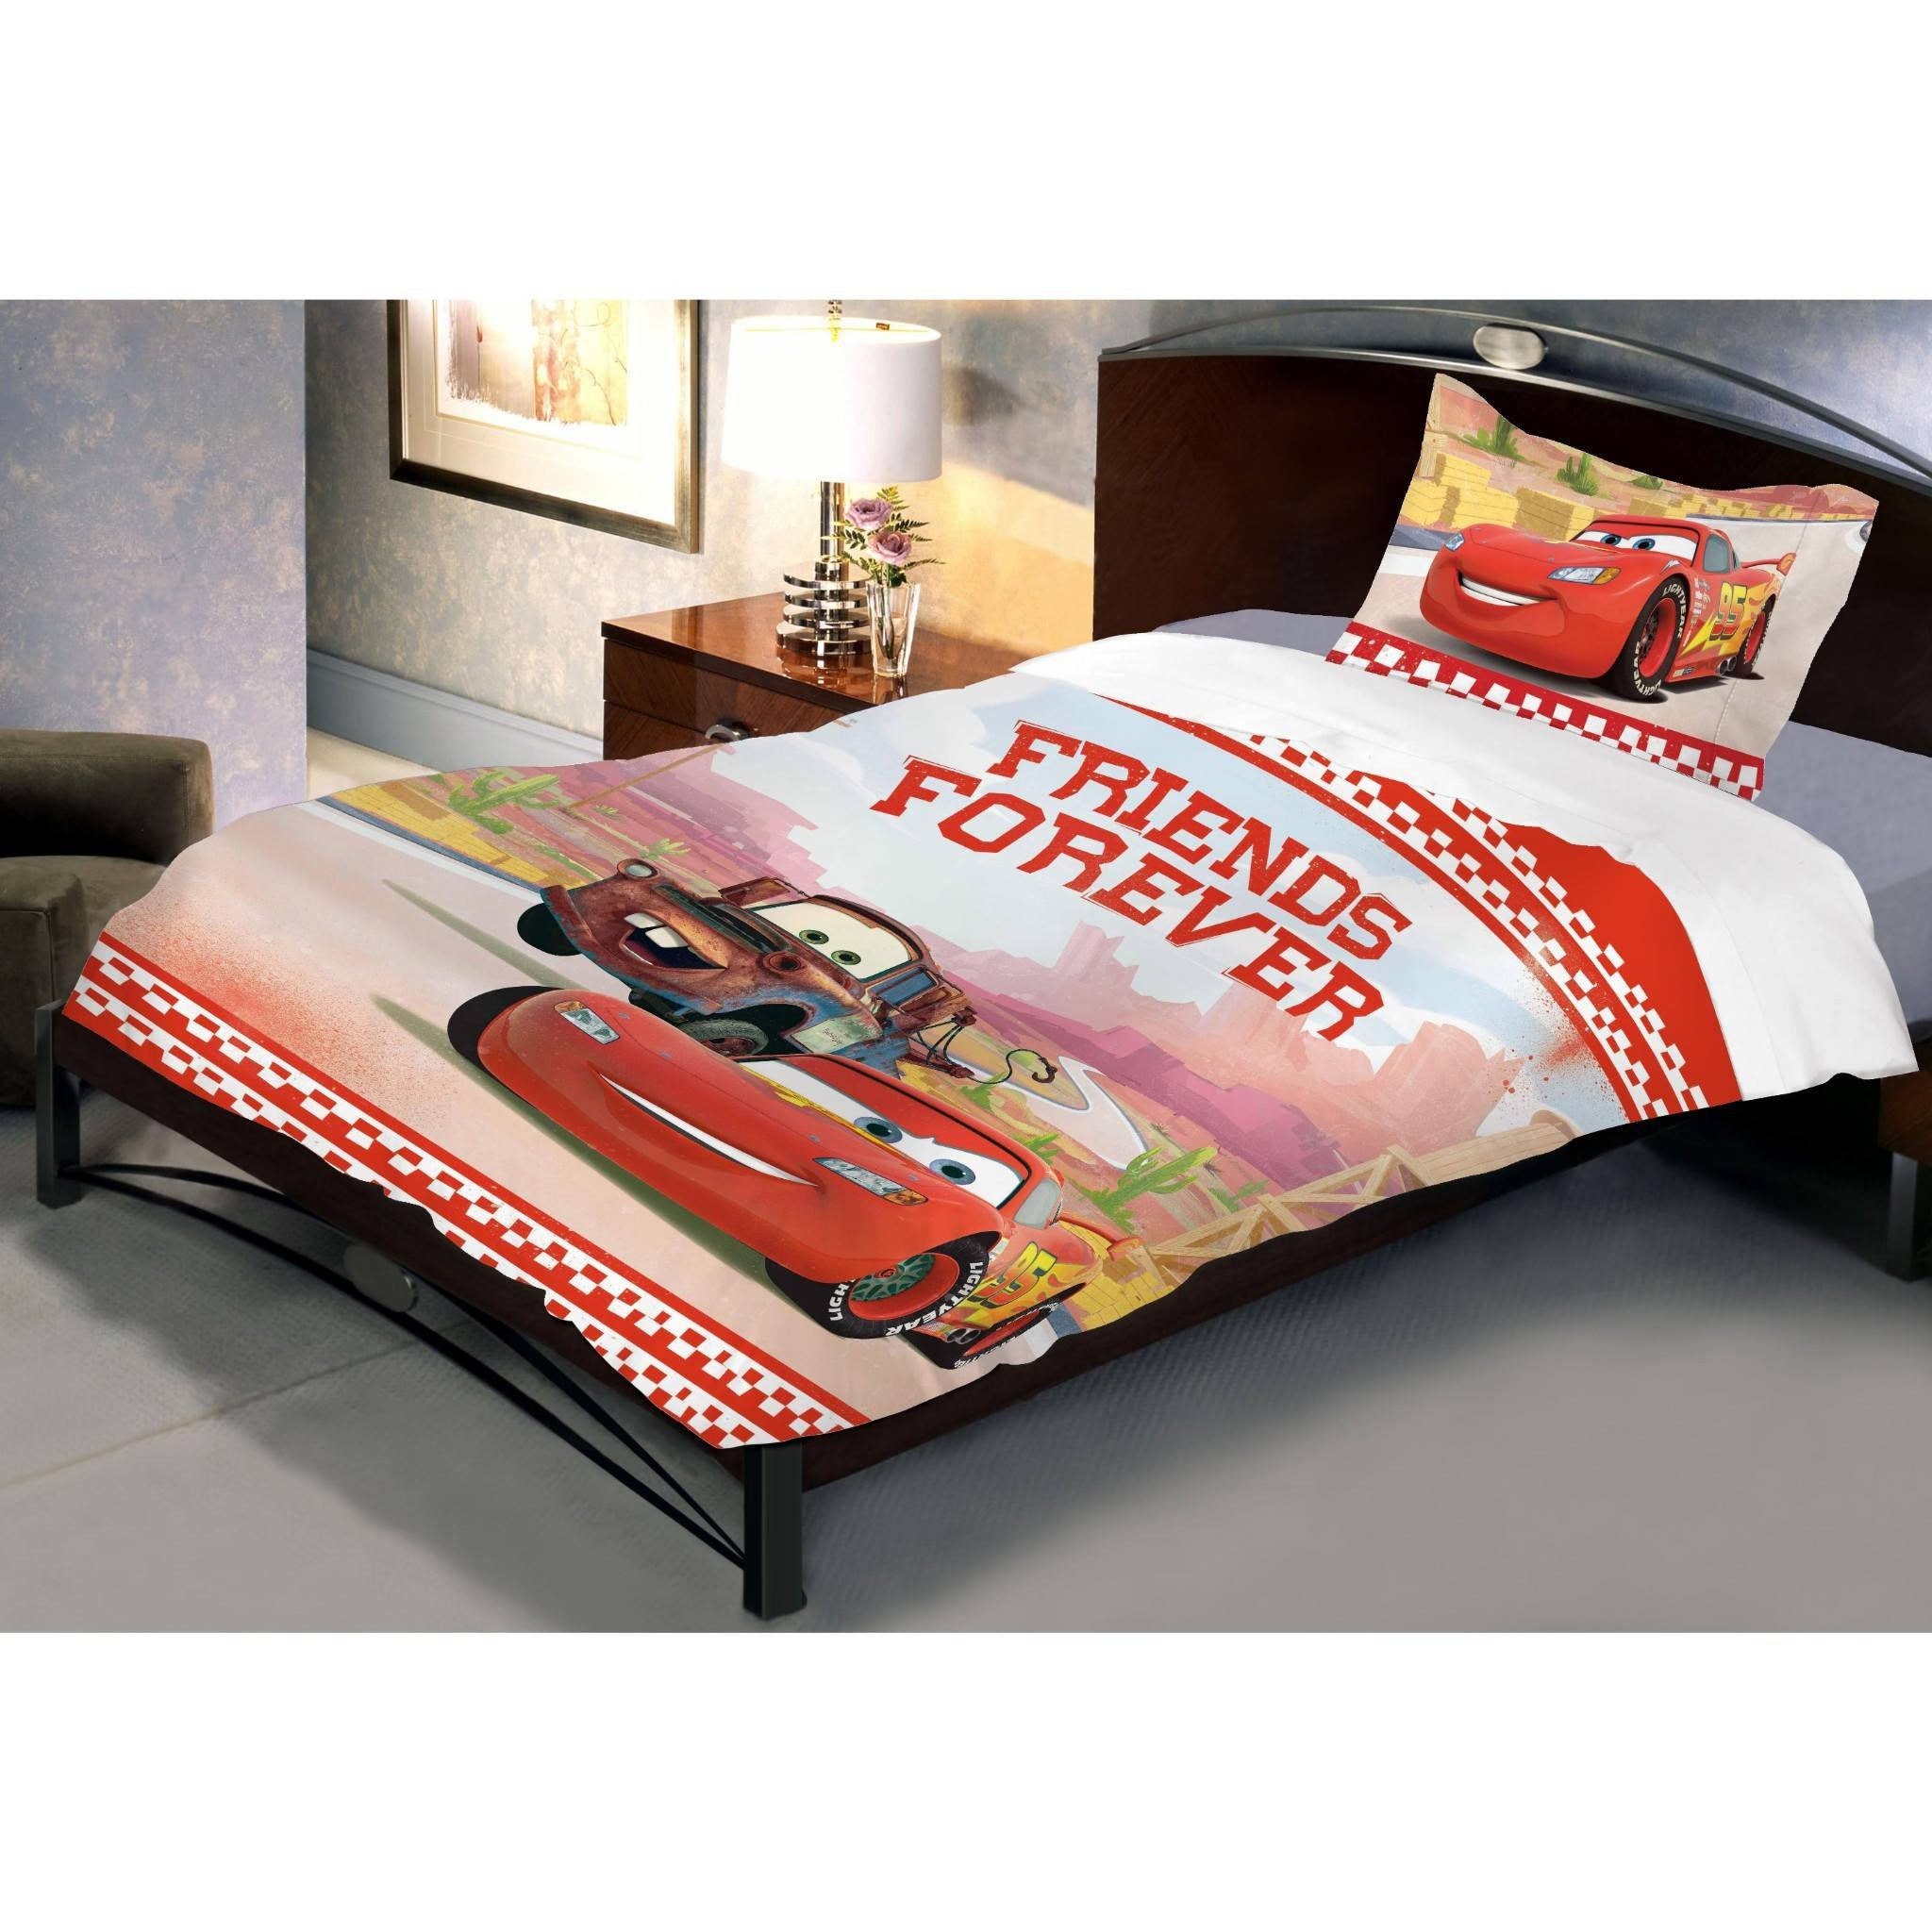 ... Lightning McQueen Friends Forever Single Bed Sheet And Pillow Cover    Über Urban Bedsheet